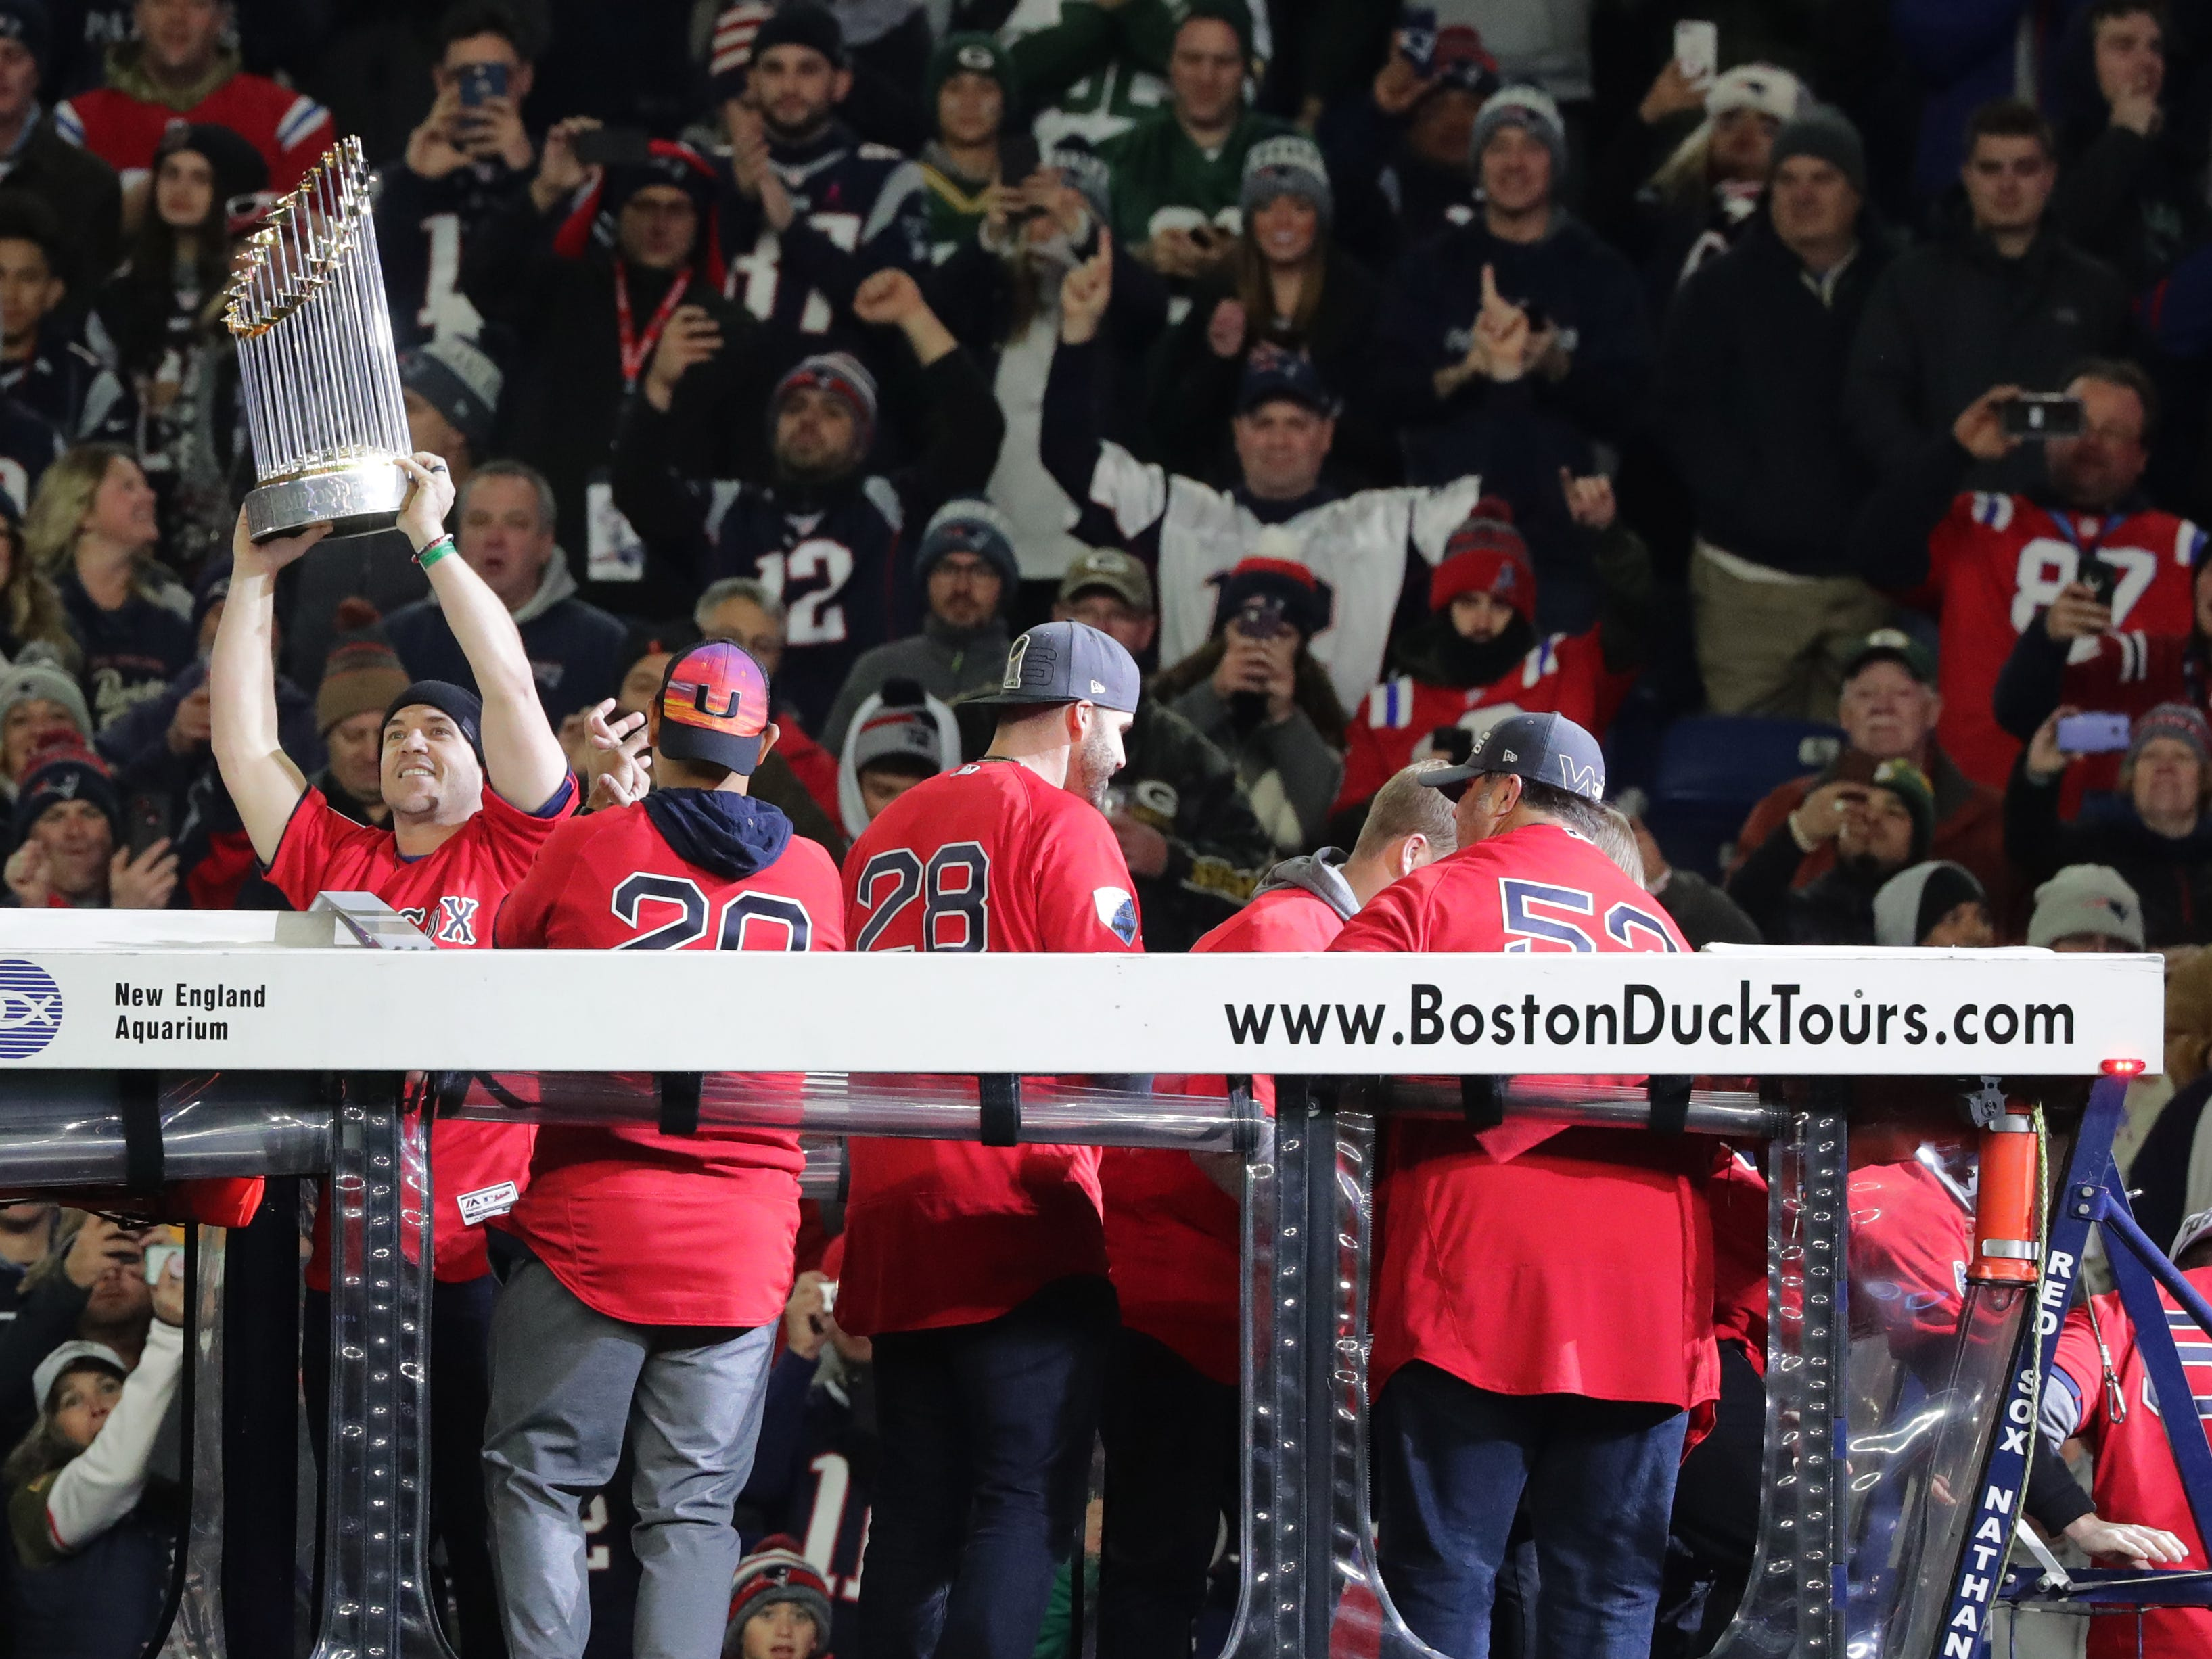 Members of the World Series winning Boston Red Sox entering carry their trophy before adoring fans before the New England Patriots game against the Green Bay Packers Sunday, November 4, 2018 at Gillette Stadium in Foxborough, Mass.